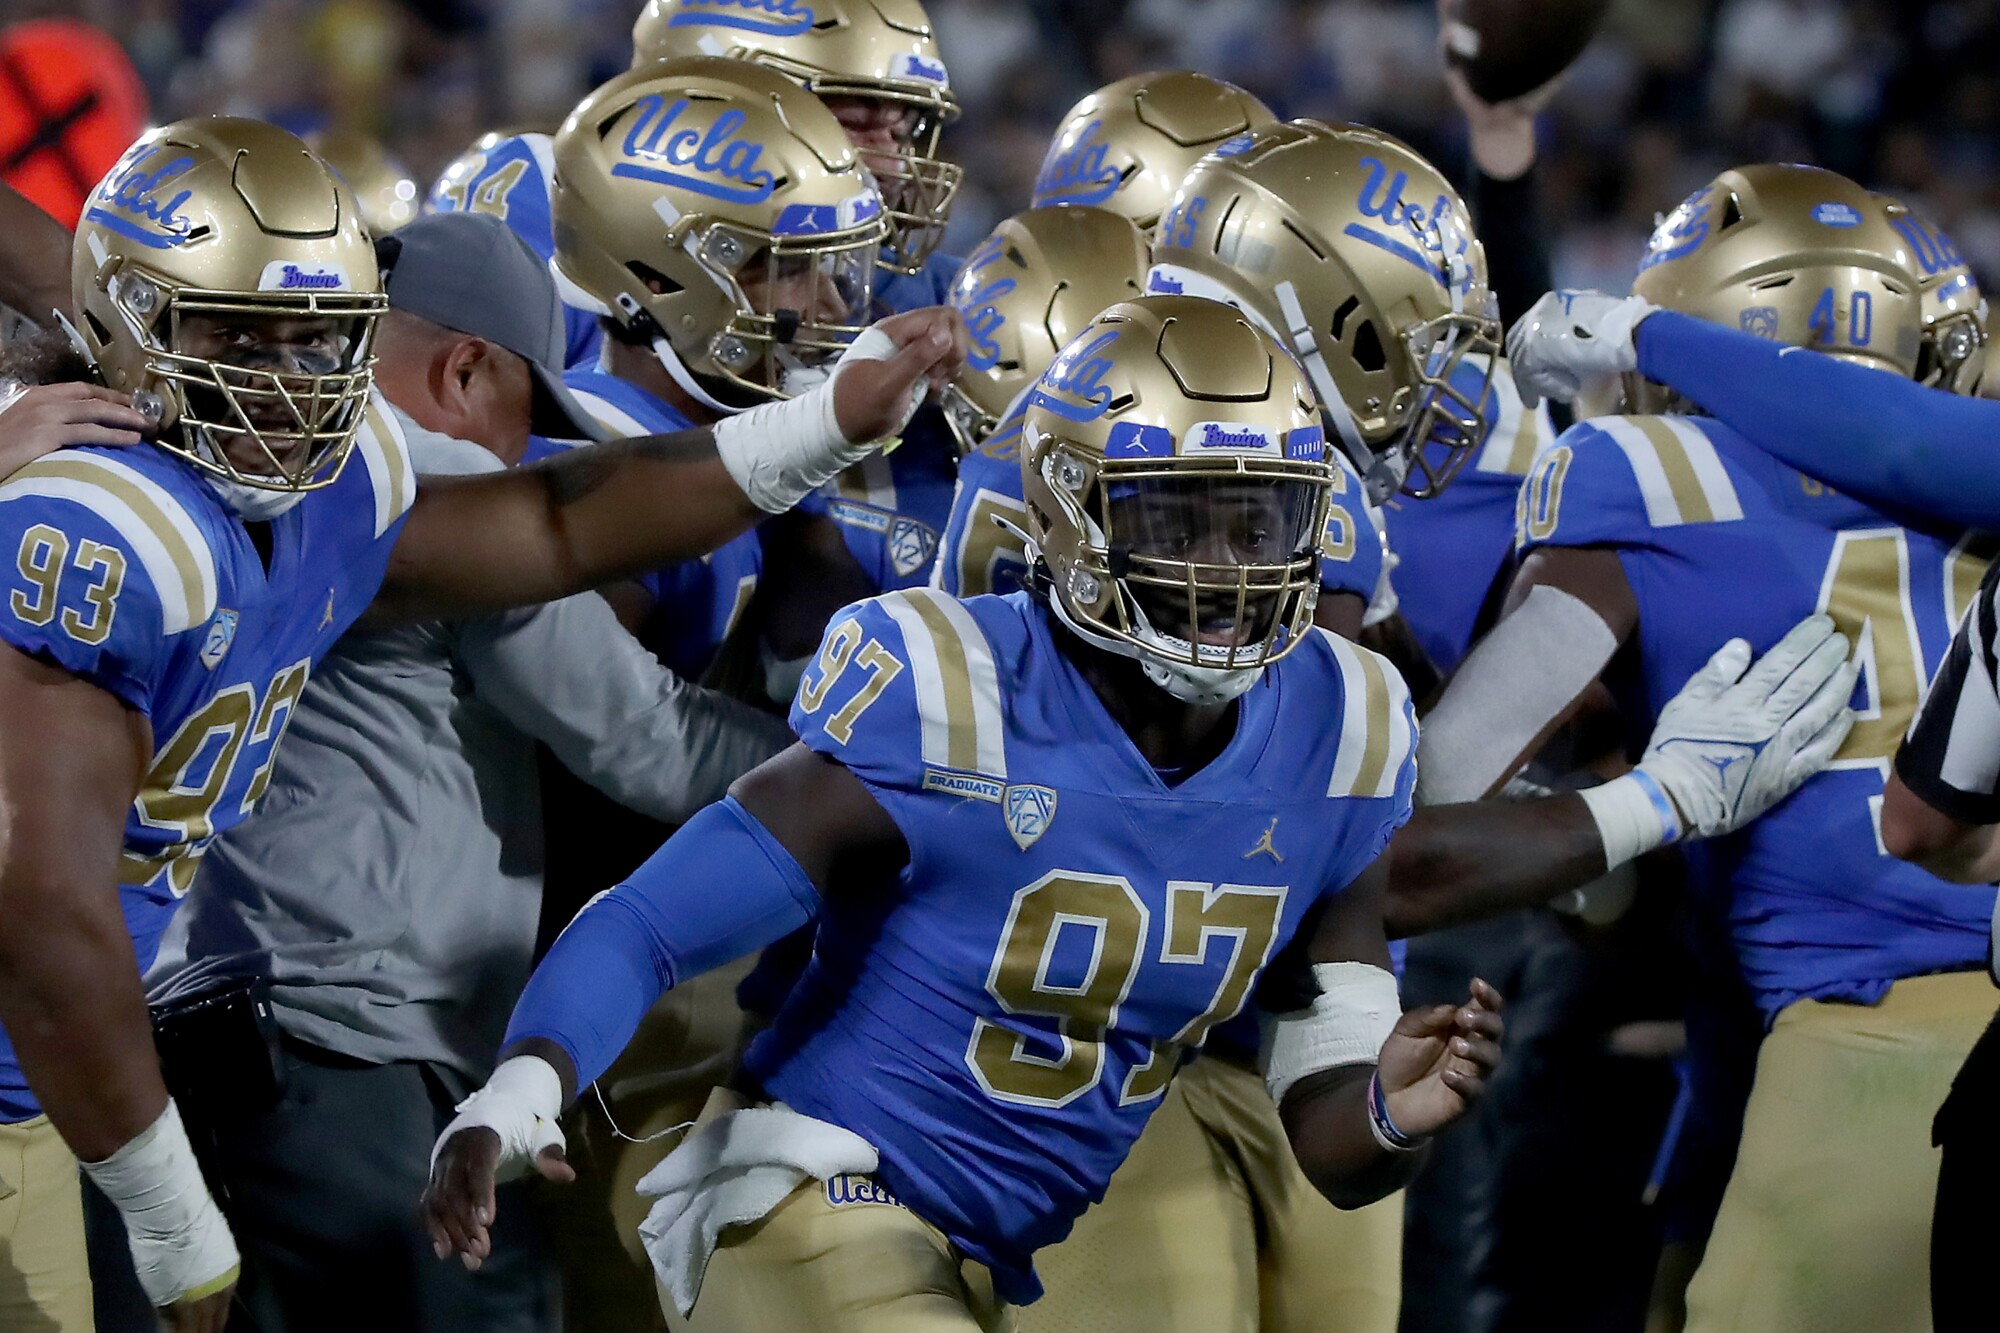 UCLA players celebrate after forcing a turnover against LSU at the Rose Bowl on Sept. 4.